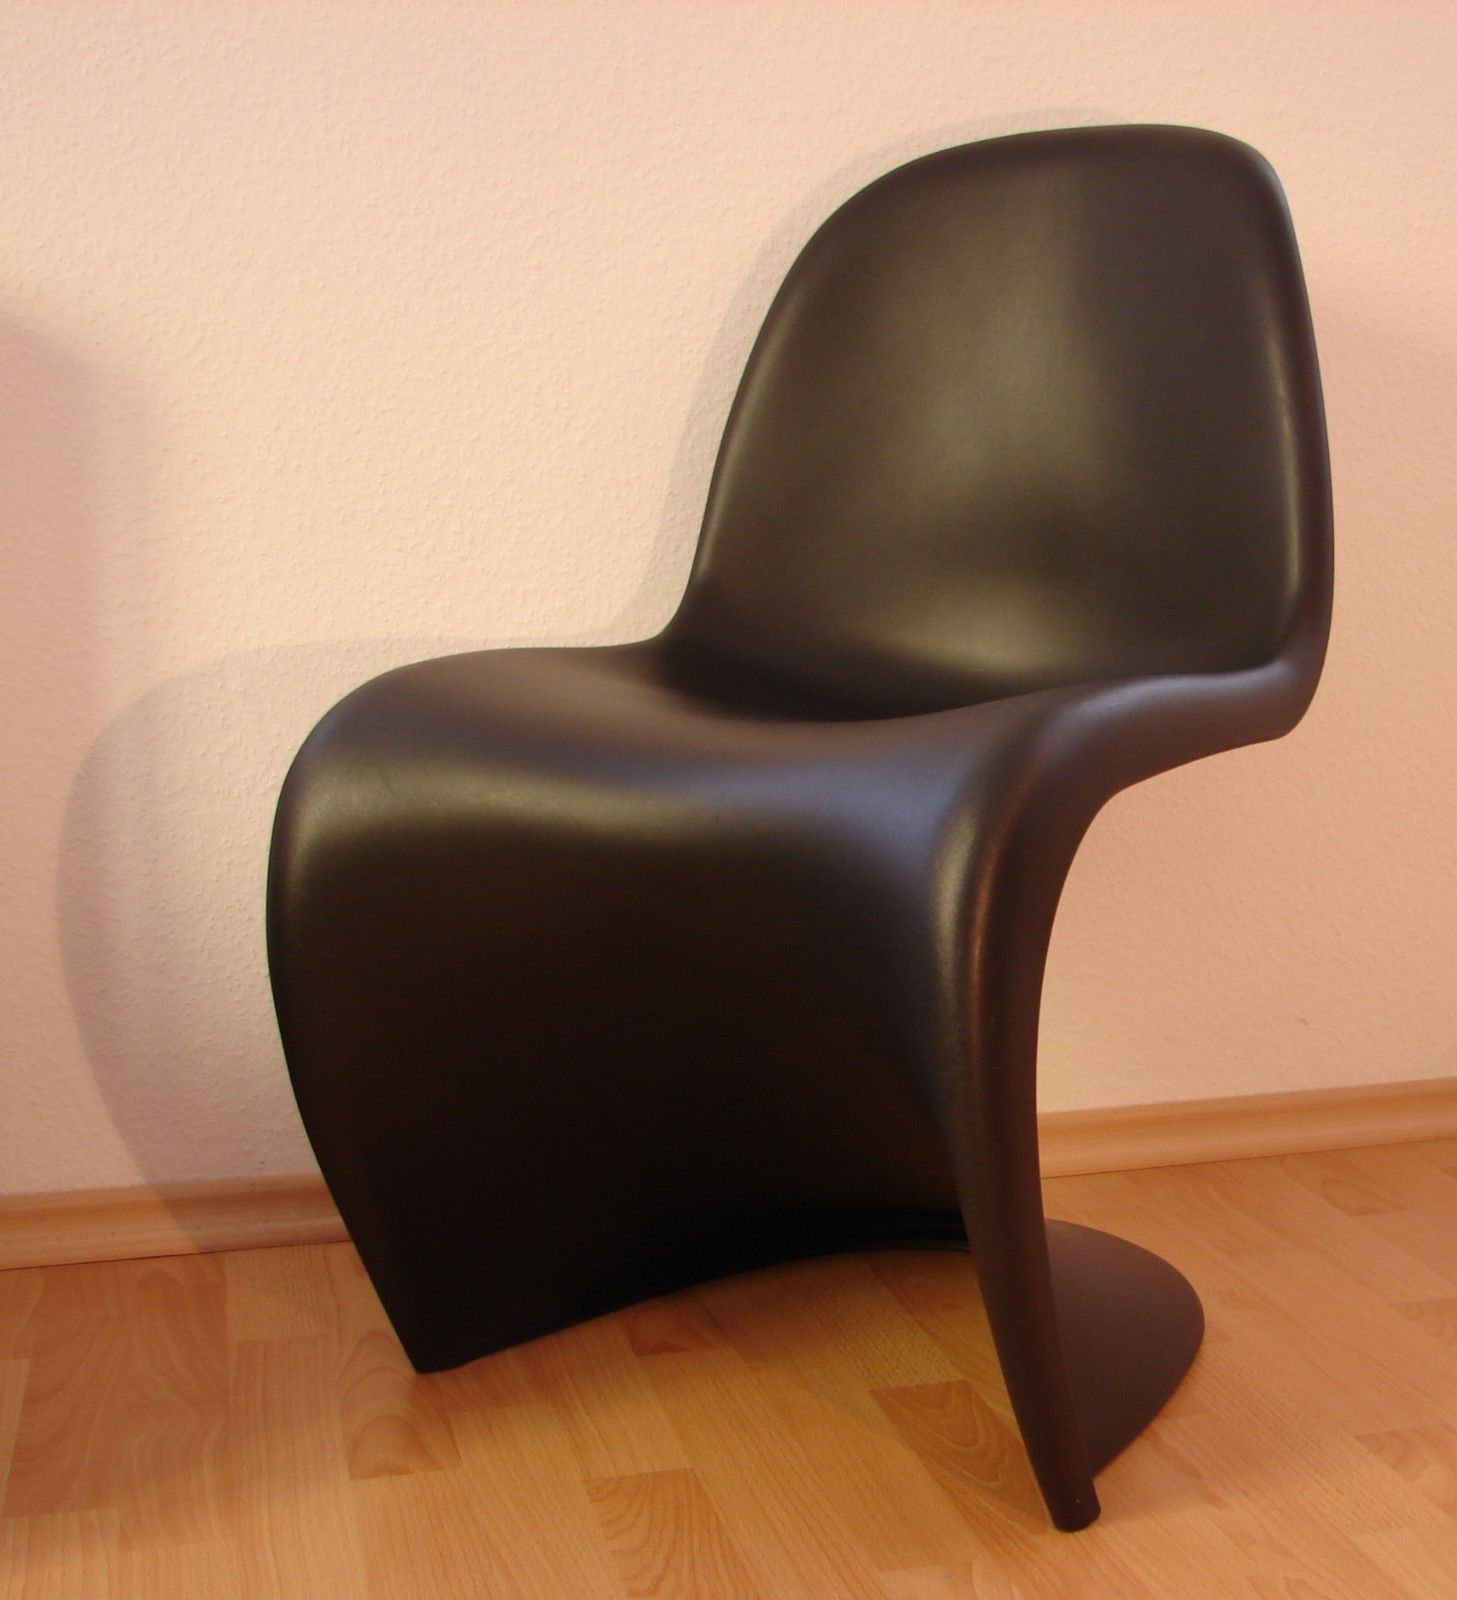 panton chair vitra ebay panton junior chair ebay panton. Black Bedroom Furniture Sets. Home Design Ideas